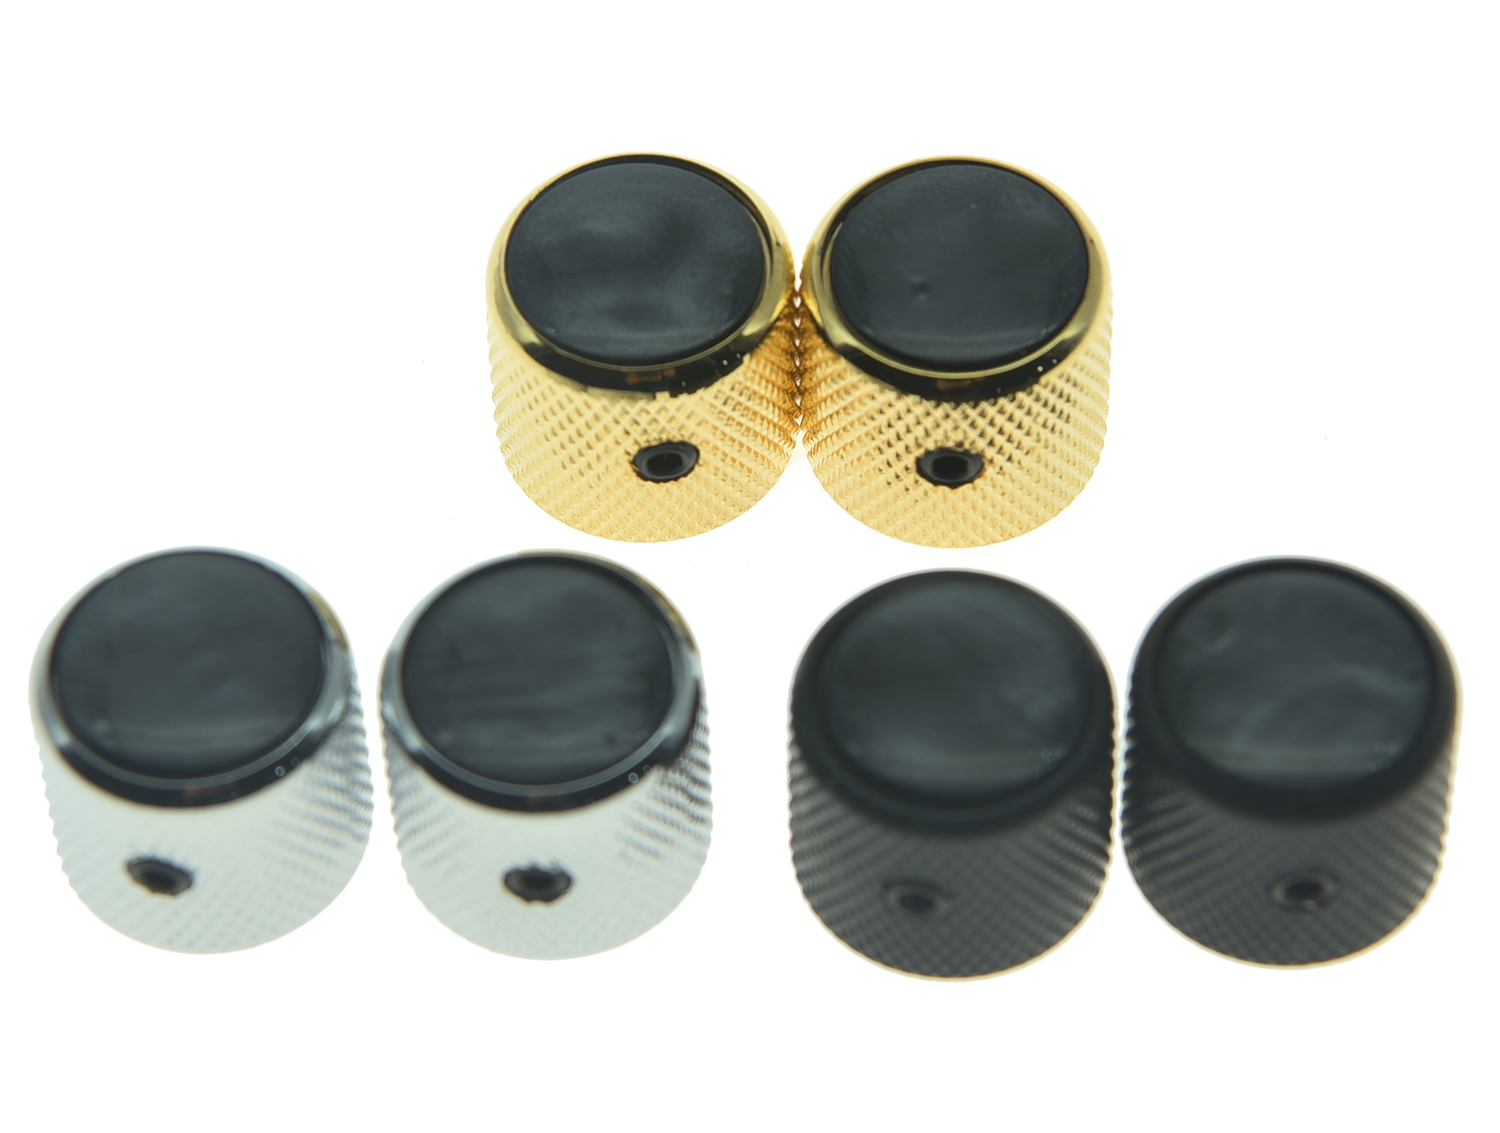 Dopro Quality Set of 2 Black Pearl Top Cap Guitar Dome Knobs with Set Screw for Tele Guitars Black Pearl Bass Knobs corporate governance and quality of earnings